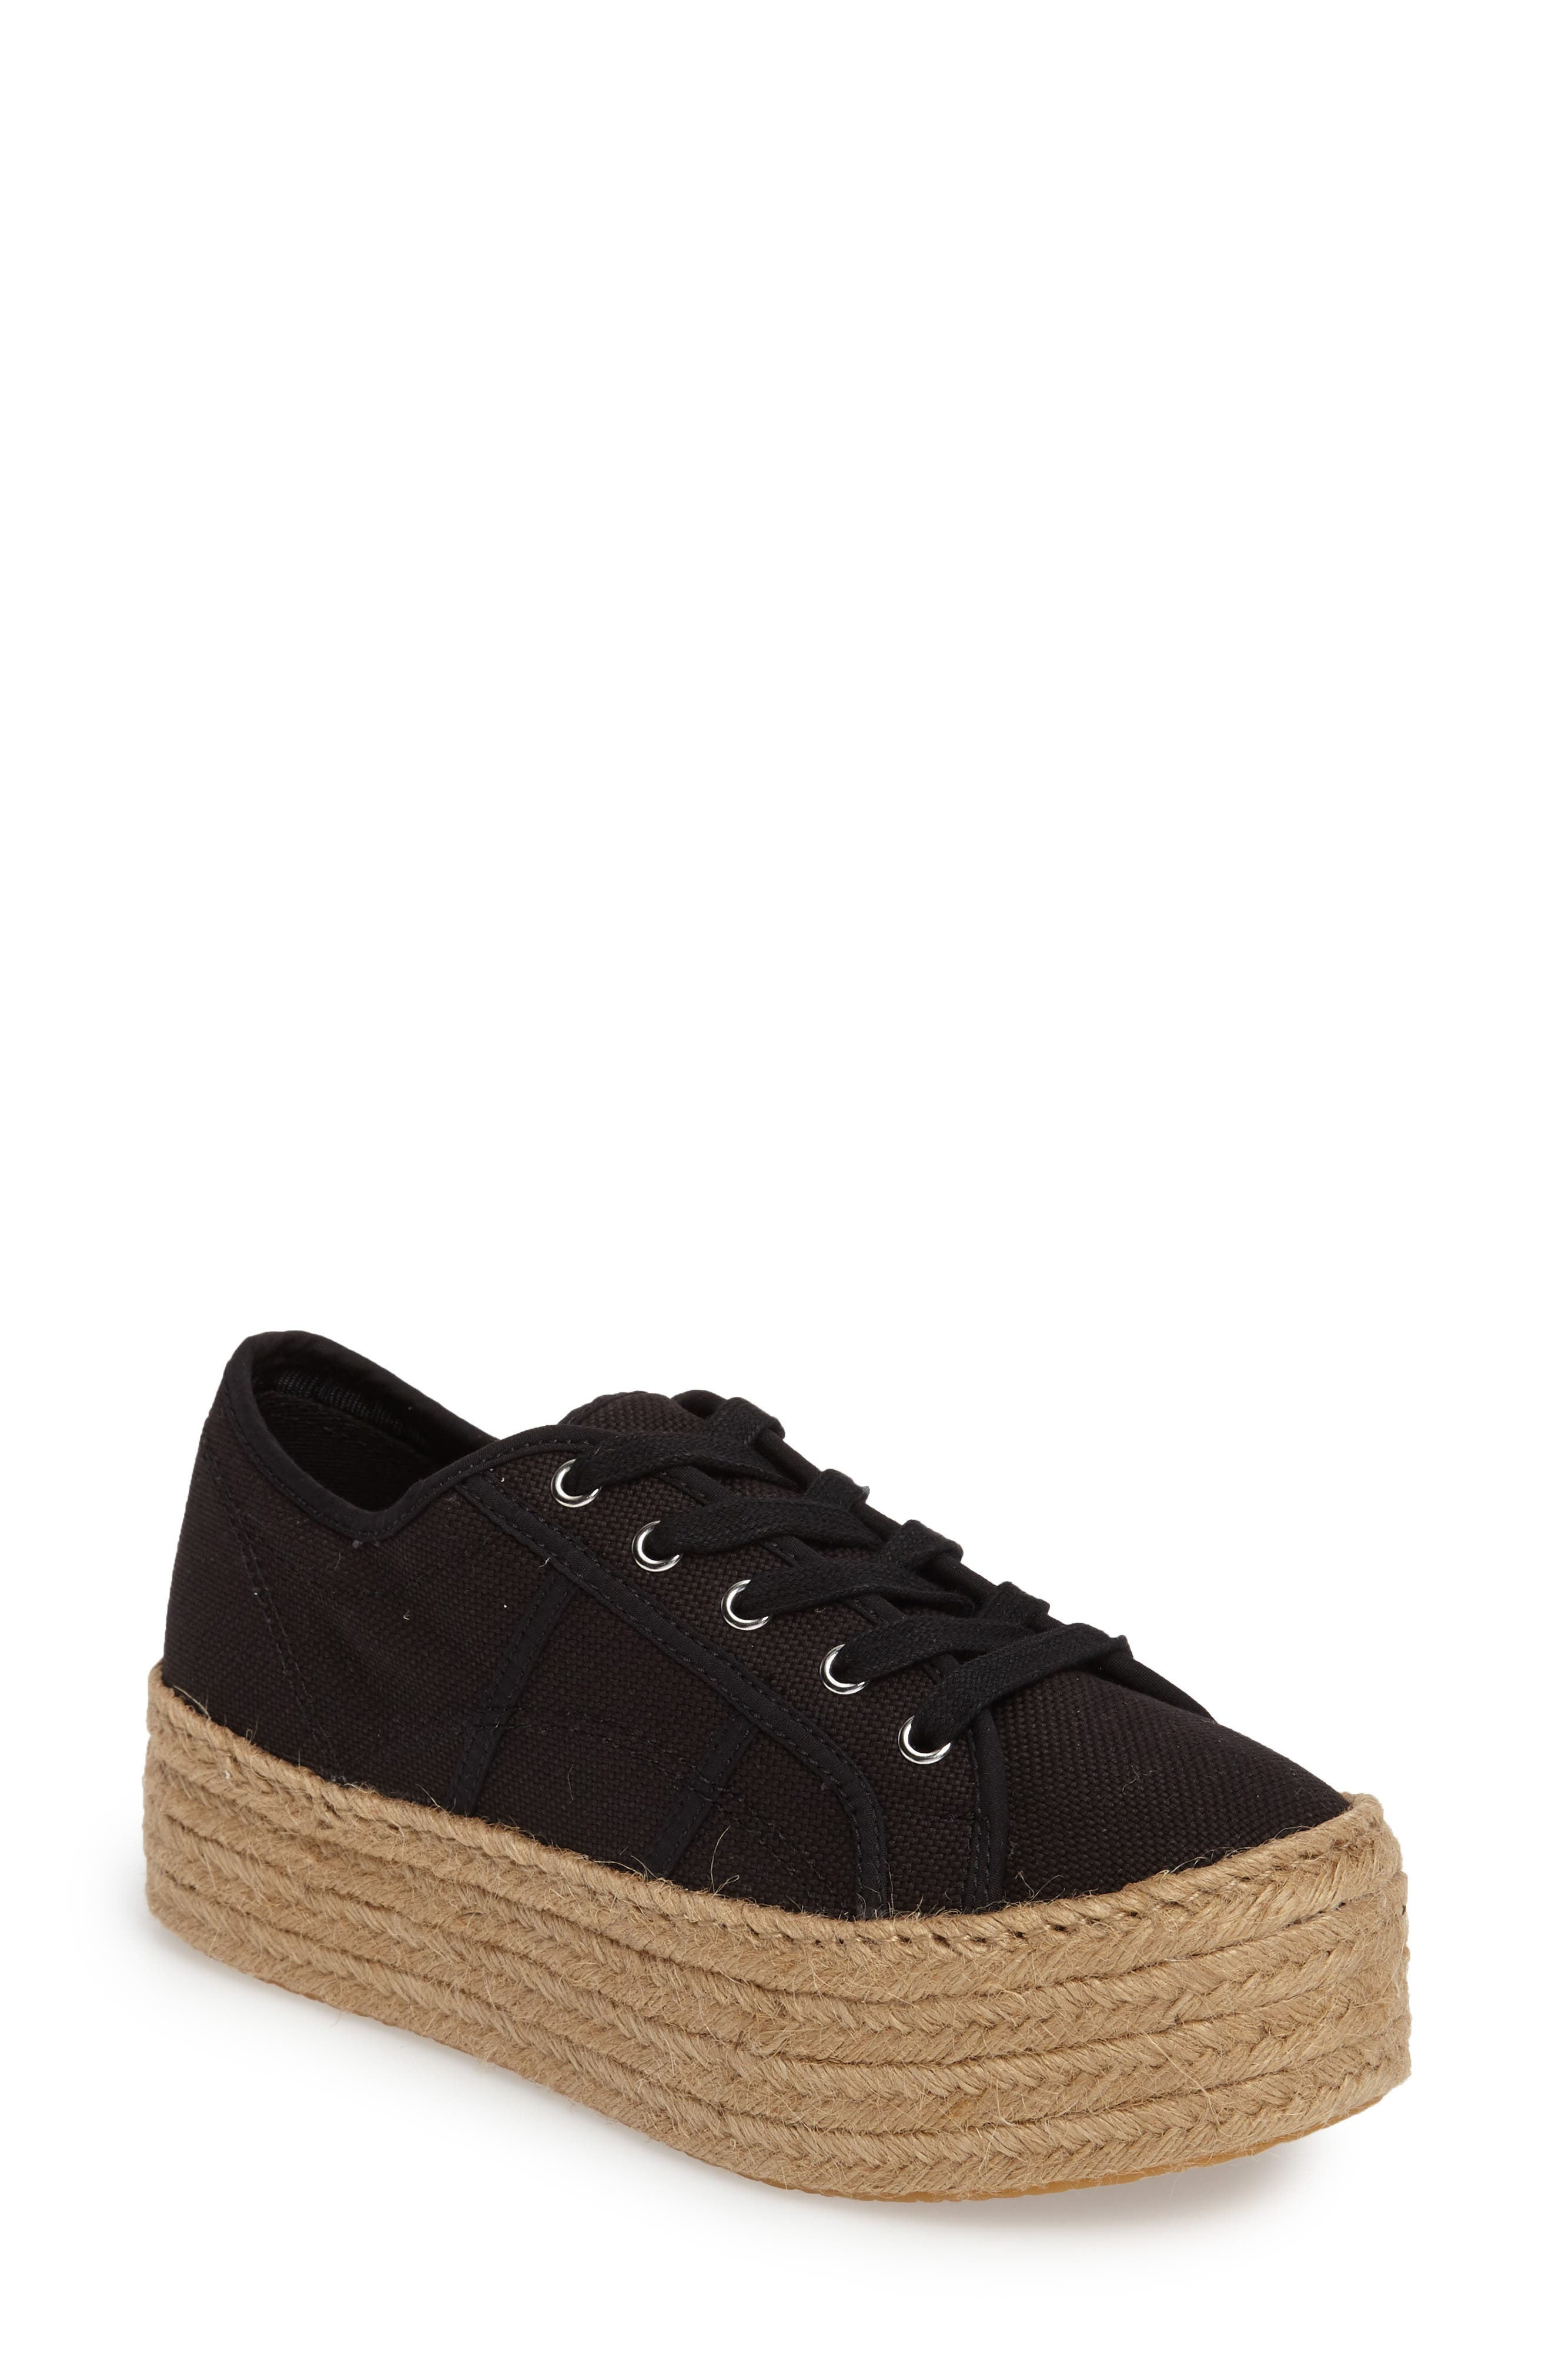 Hampton Platform Sneaker,                         Main,                         color, 007